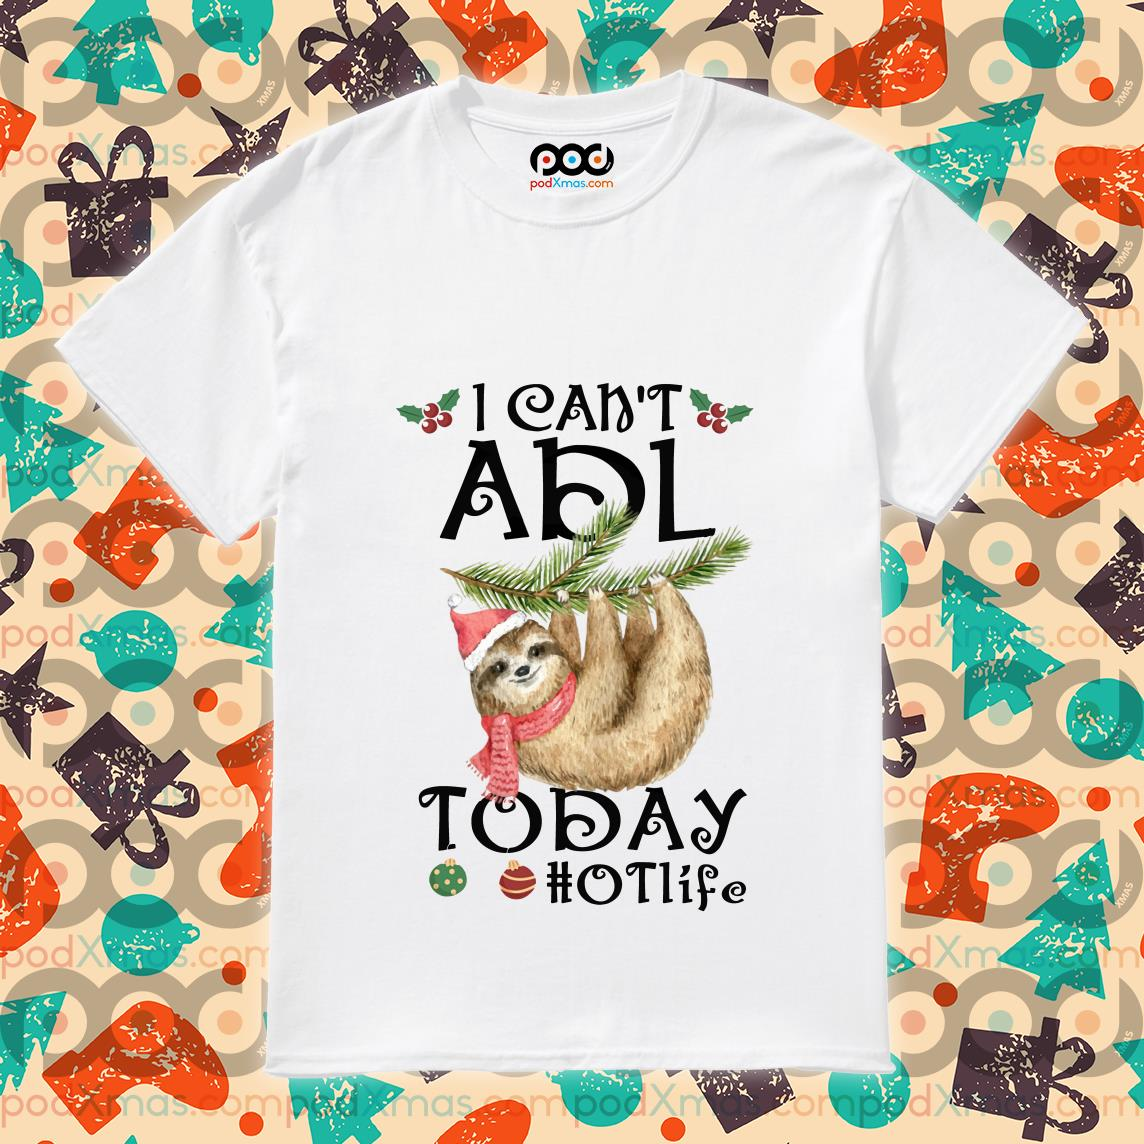 Sloth I can't ADL today hotlife shirt